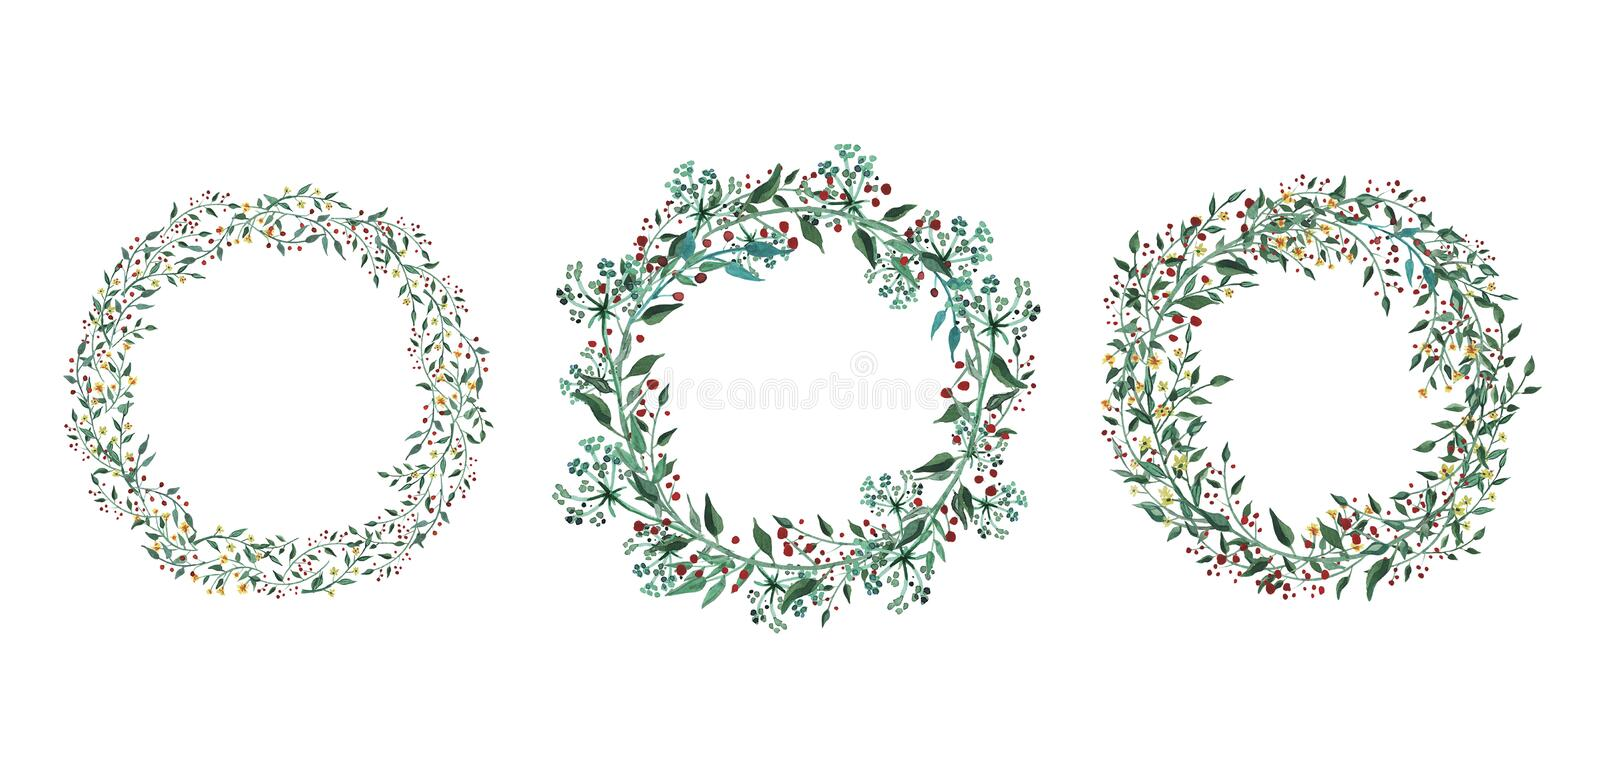 Set of watercolor flowers, leaves, branches, isolated on white. royalty free illustration